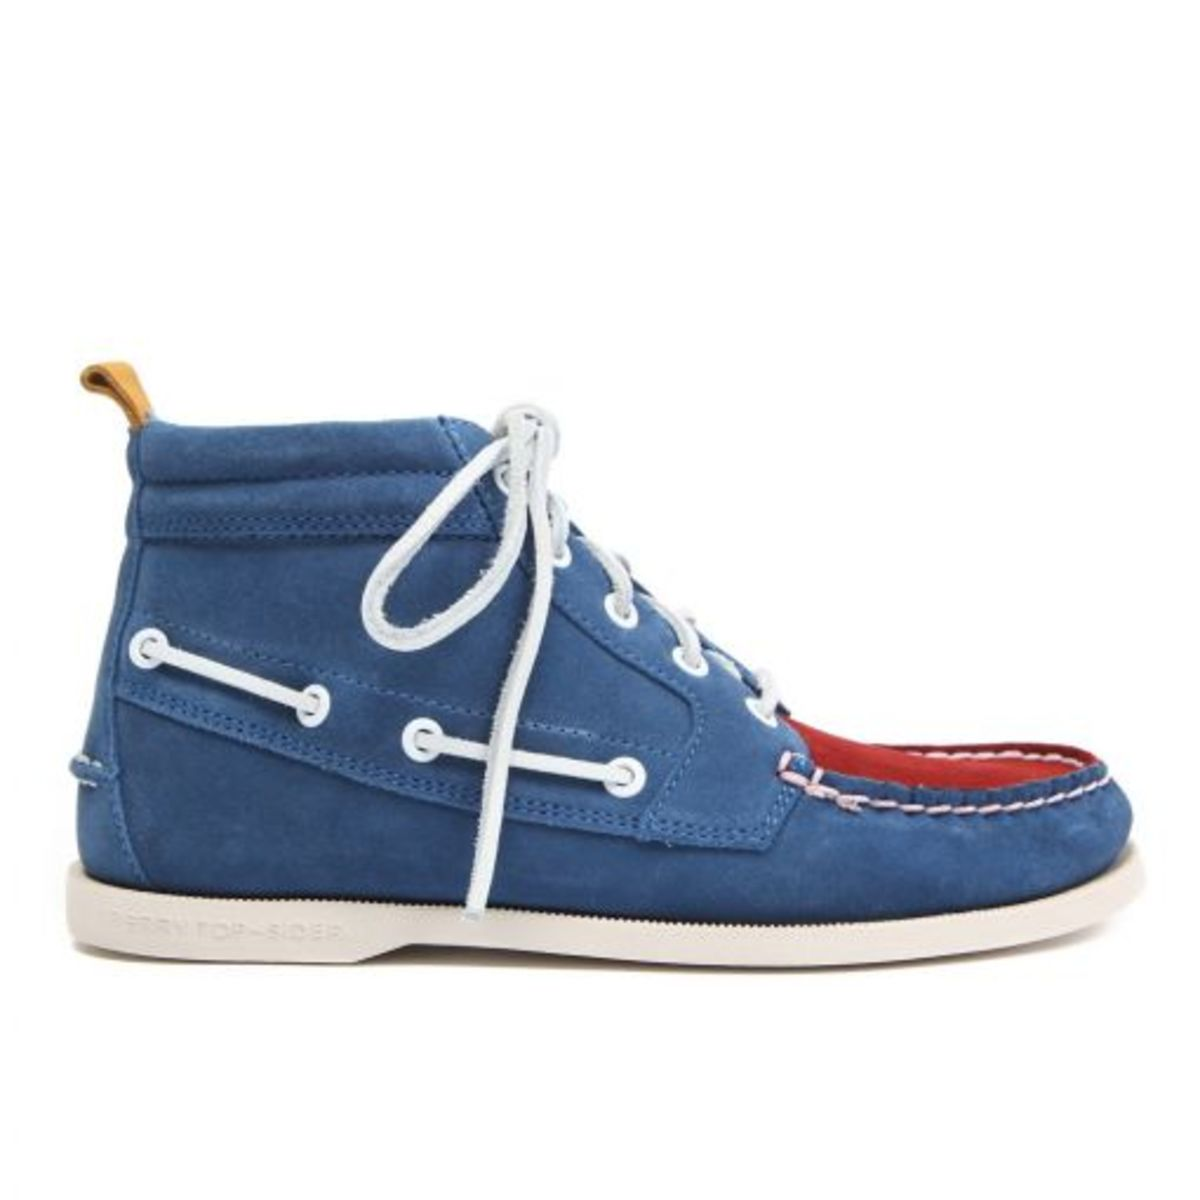 band_of_outsider_sperry_topsider_13